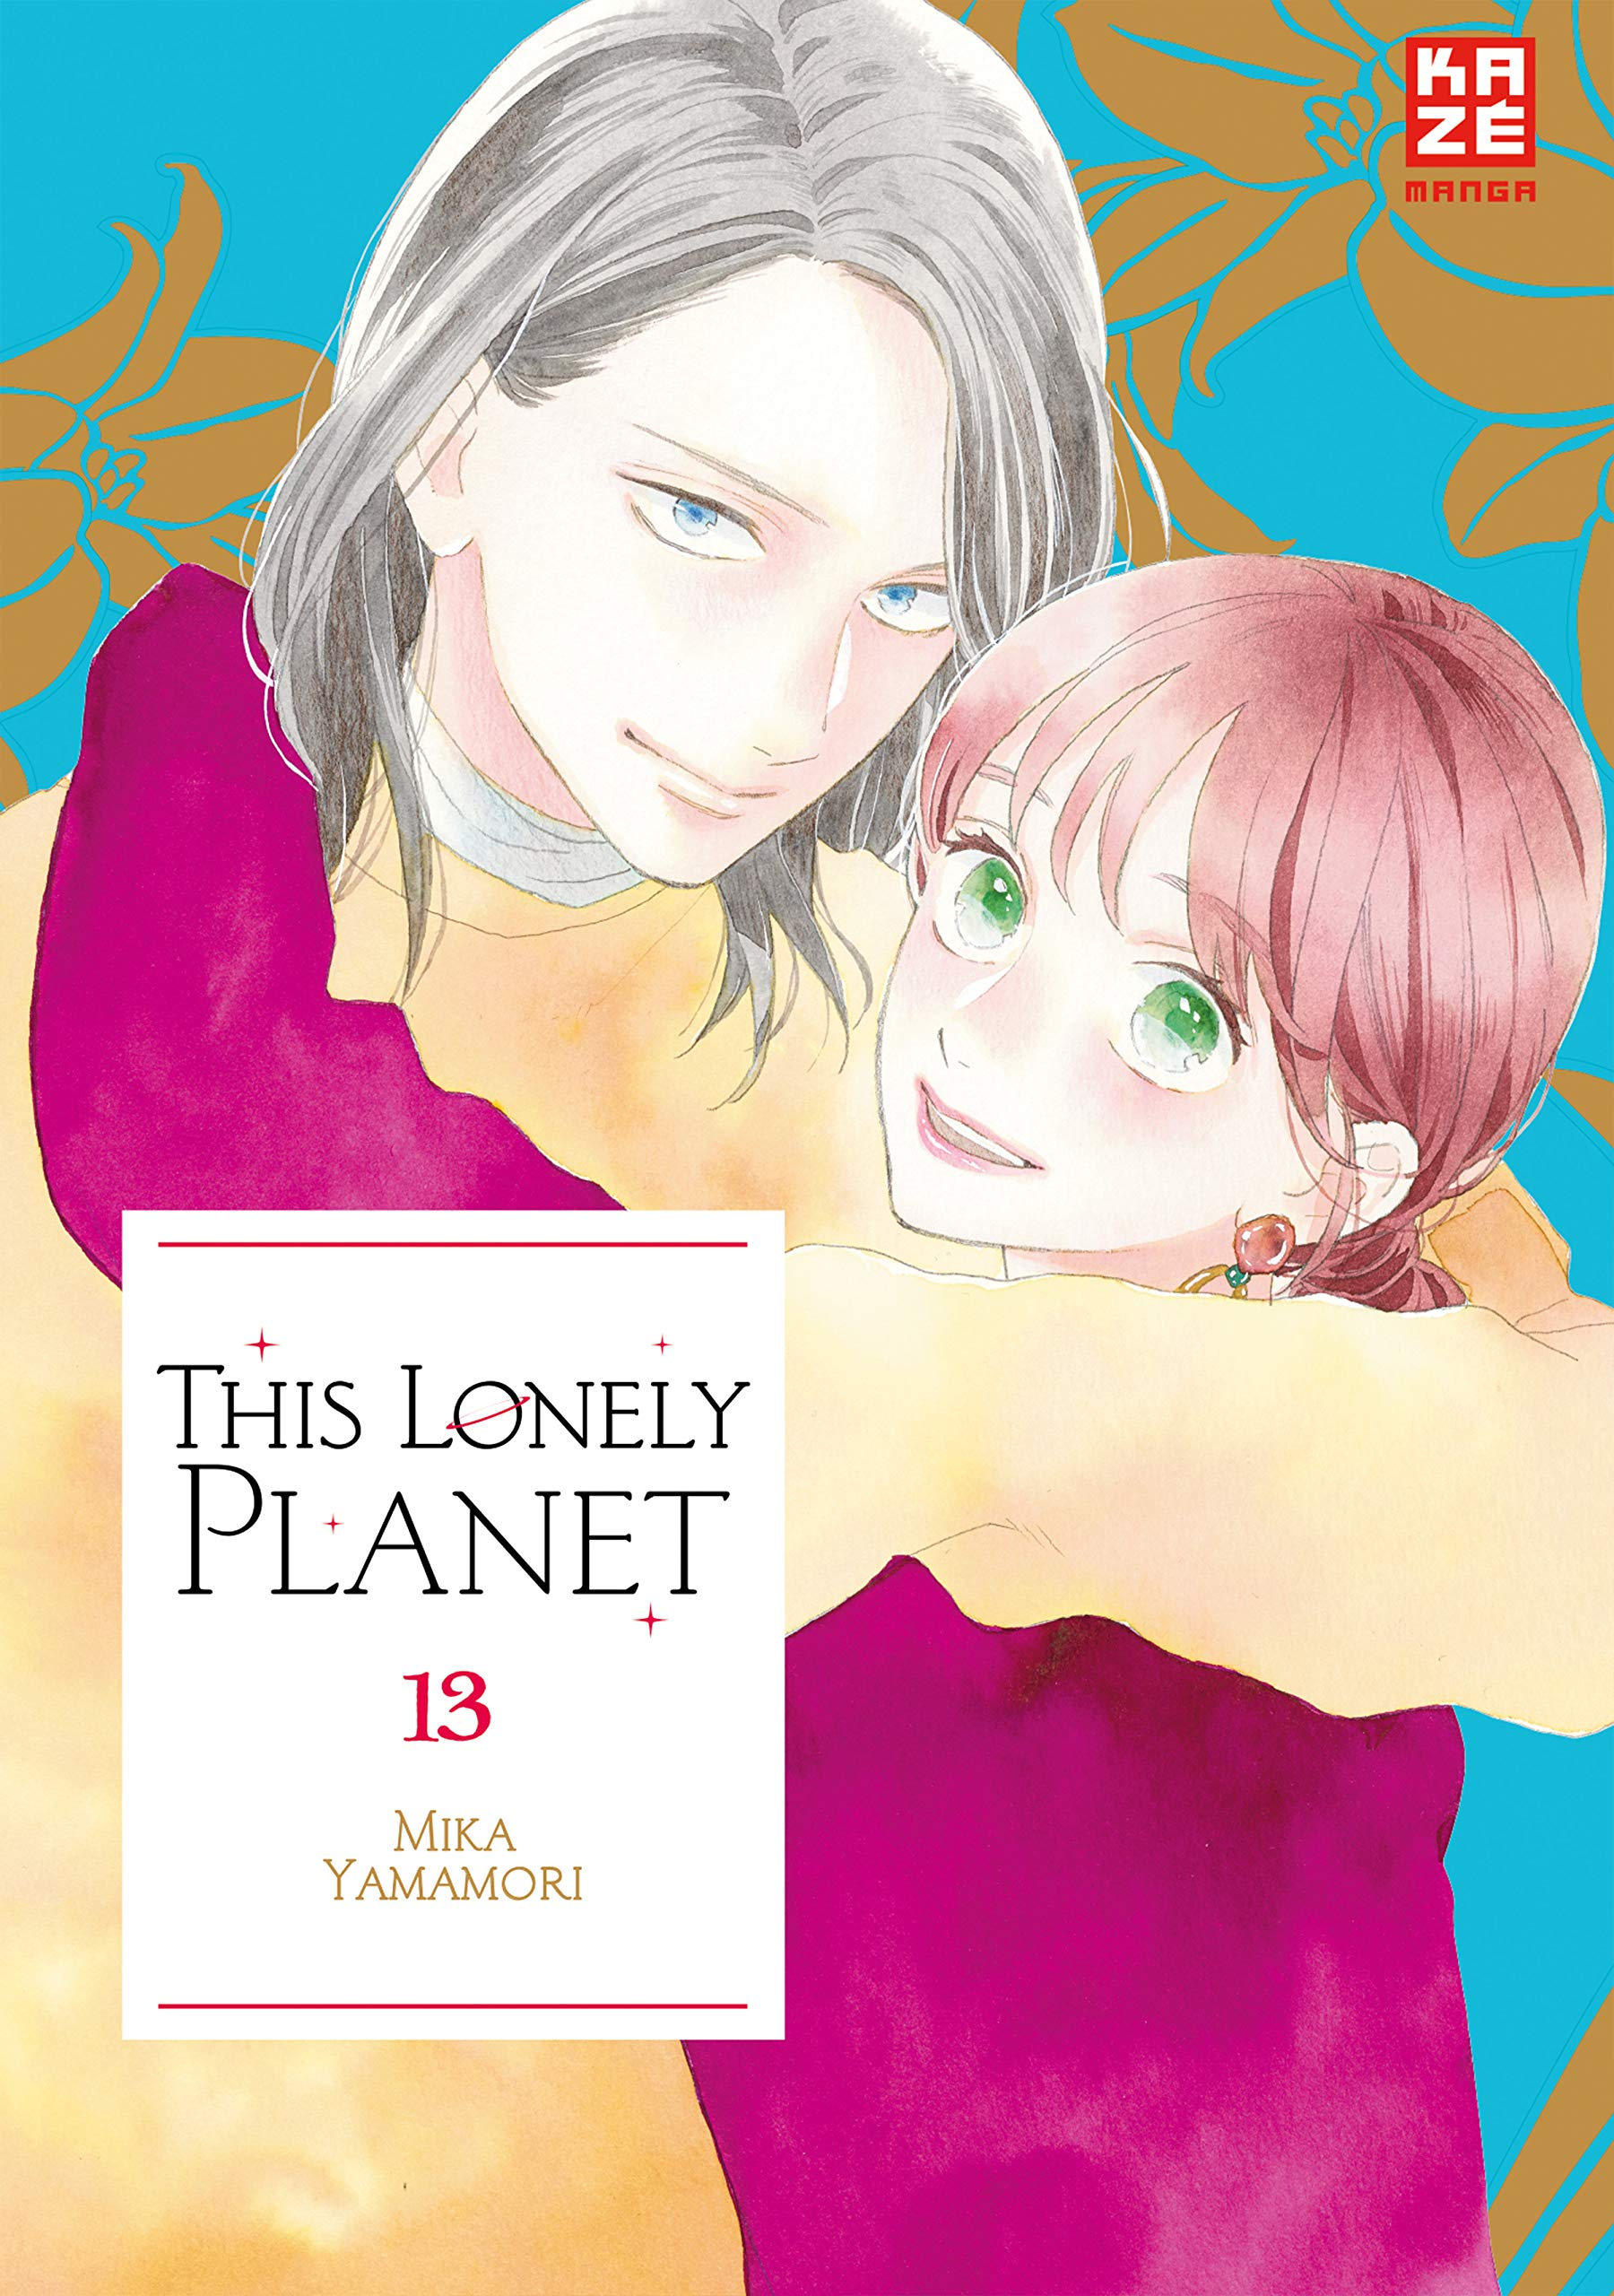 This Lonely Planet 13